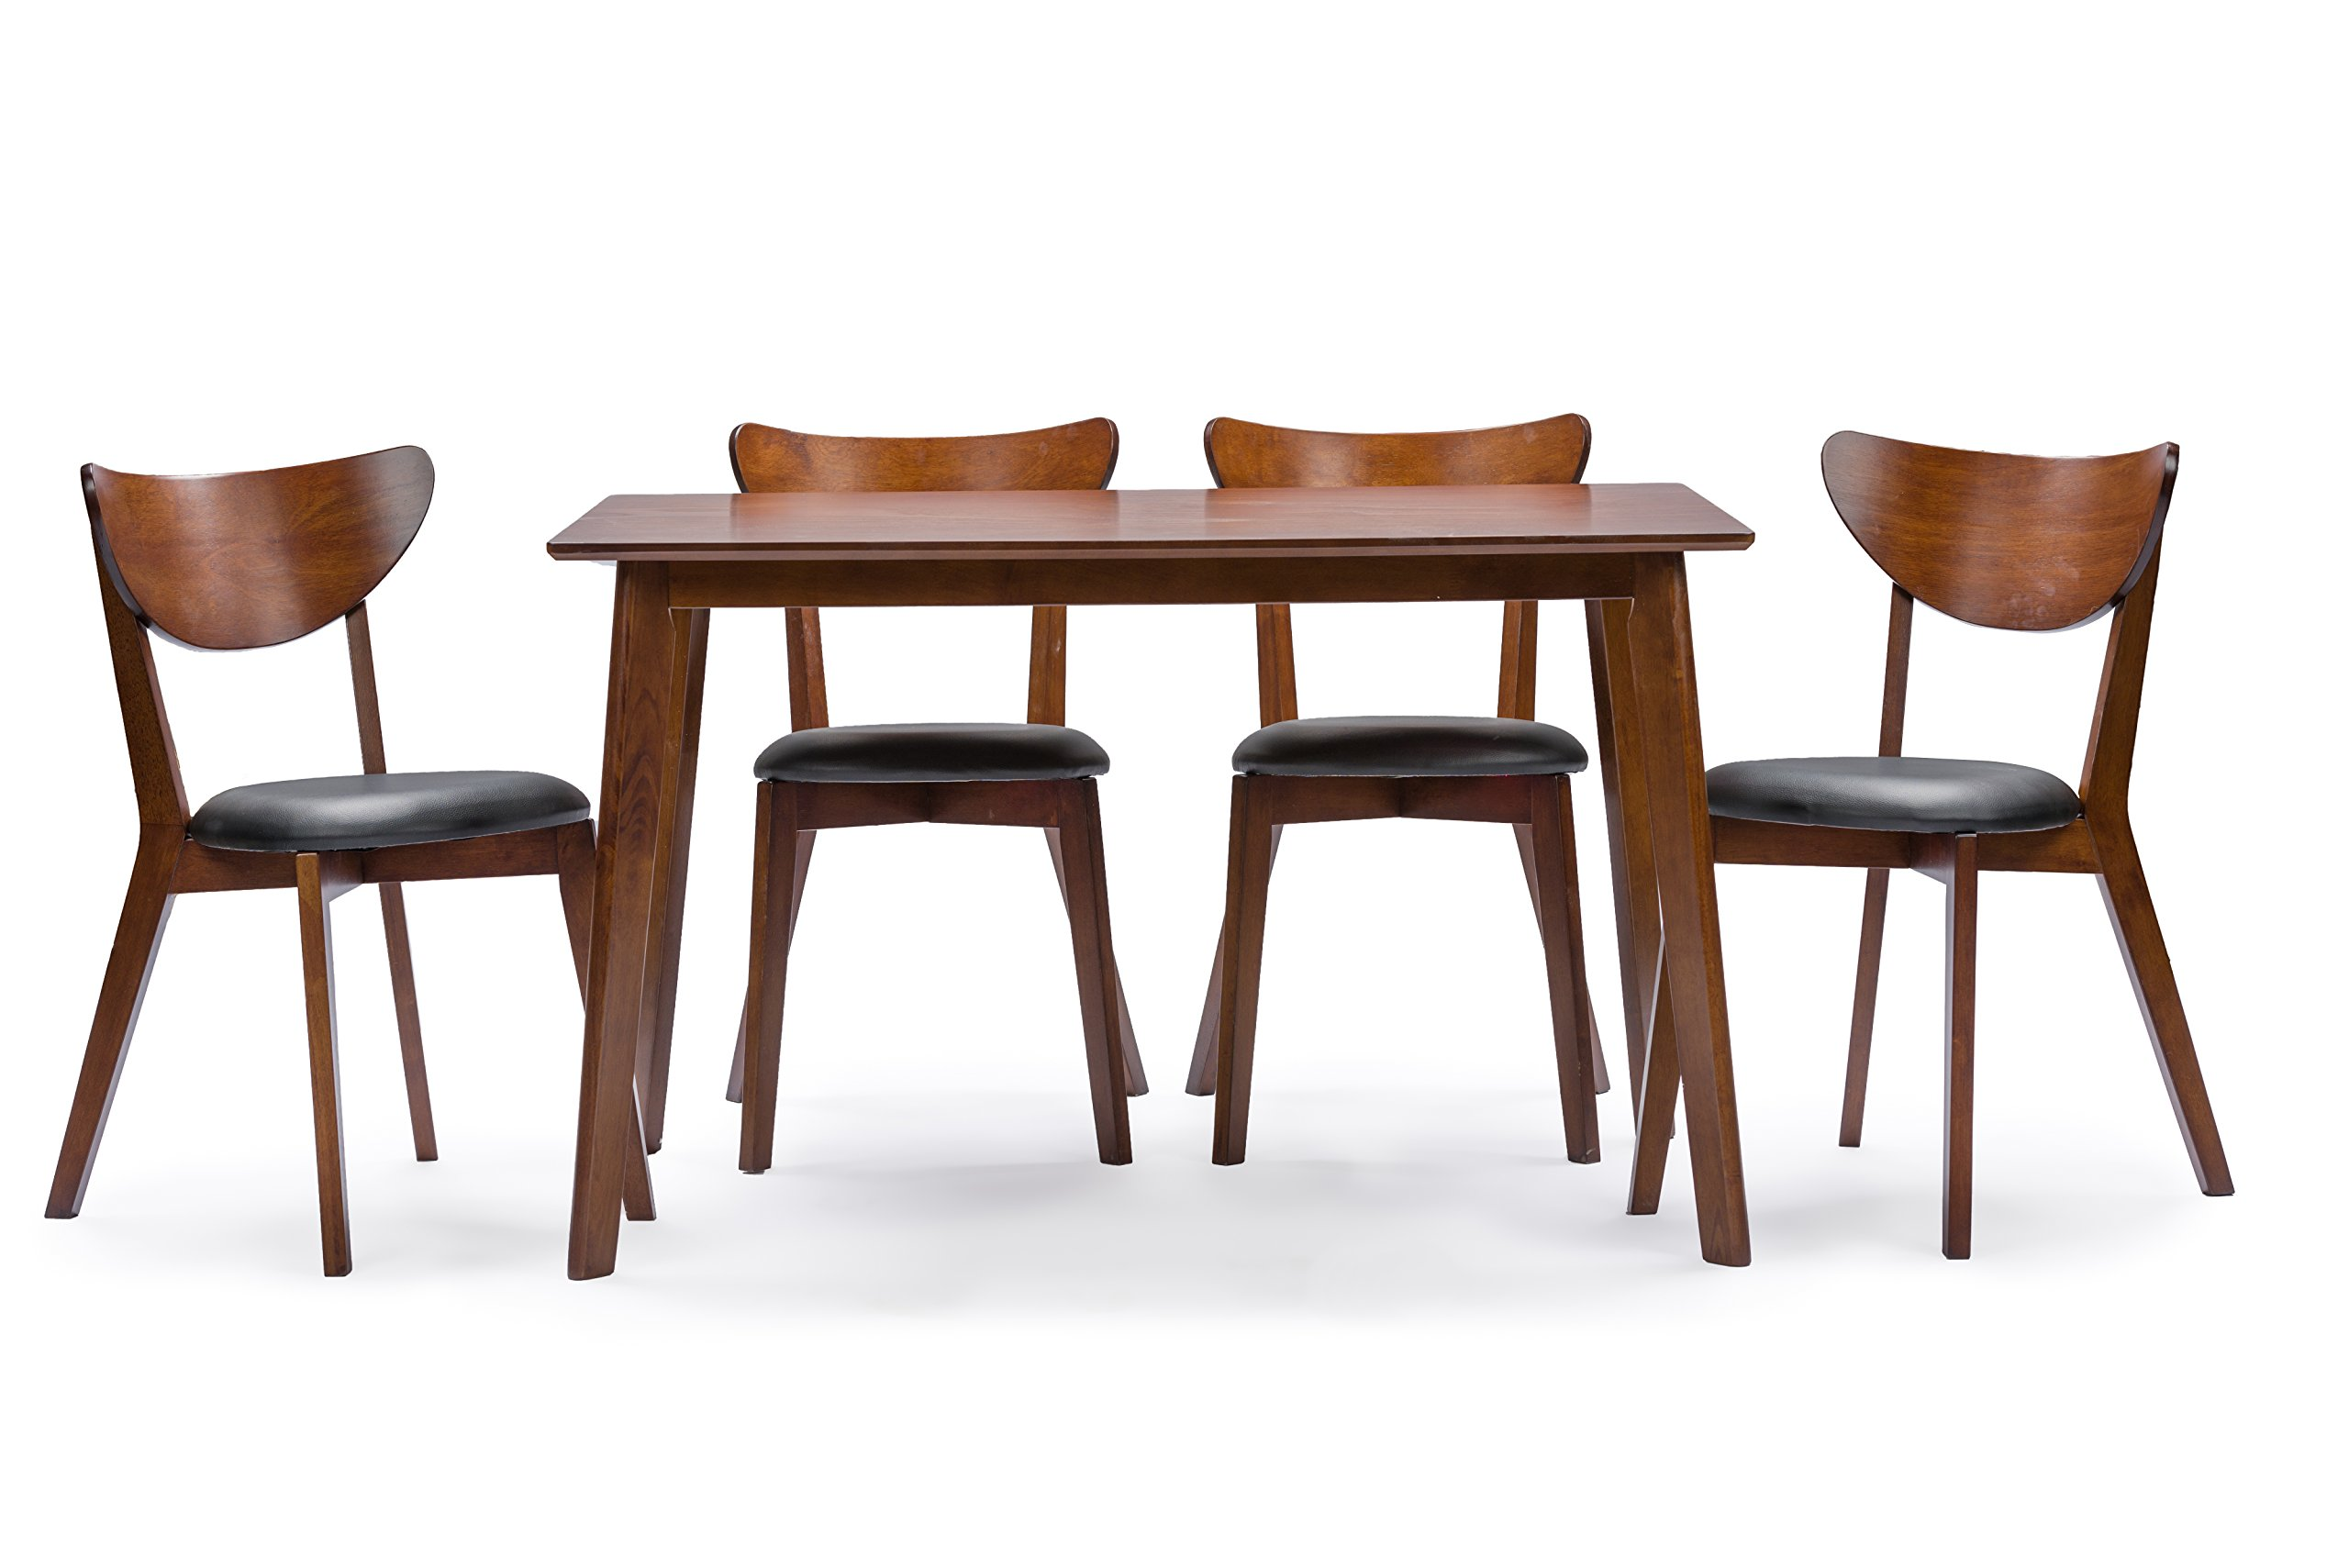 Baxton Studio Sumner Mid-Century Style 5 Piece Dining Set, Walnut Brown by Baxton Studio